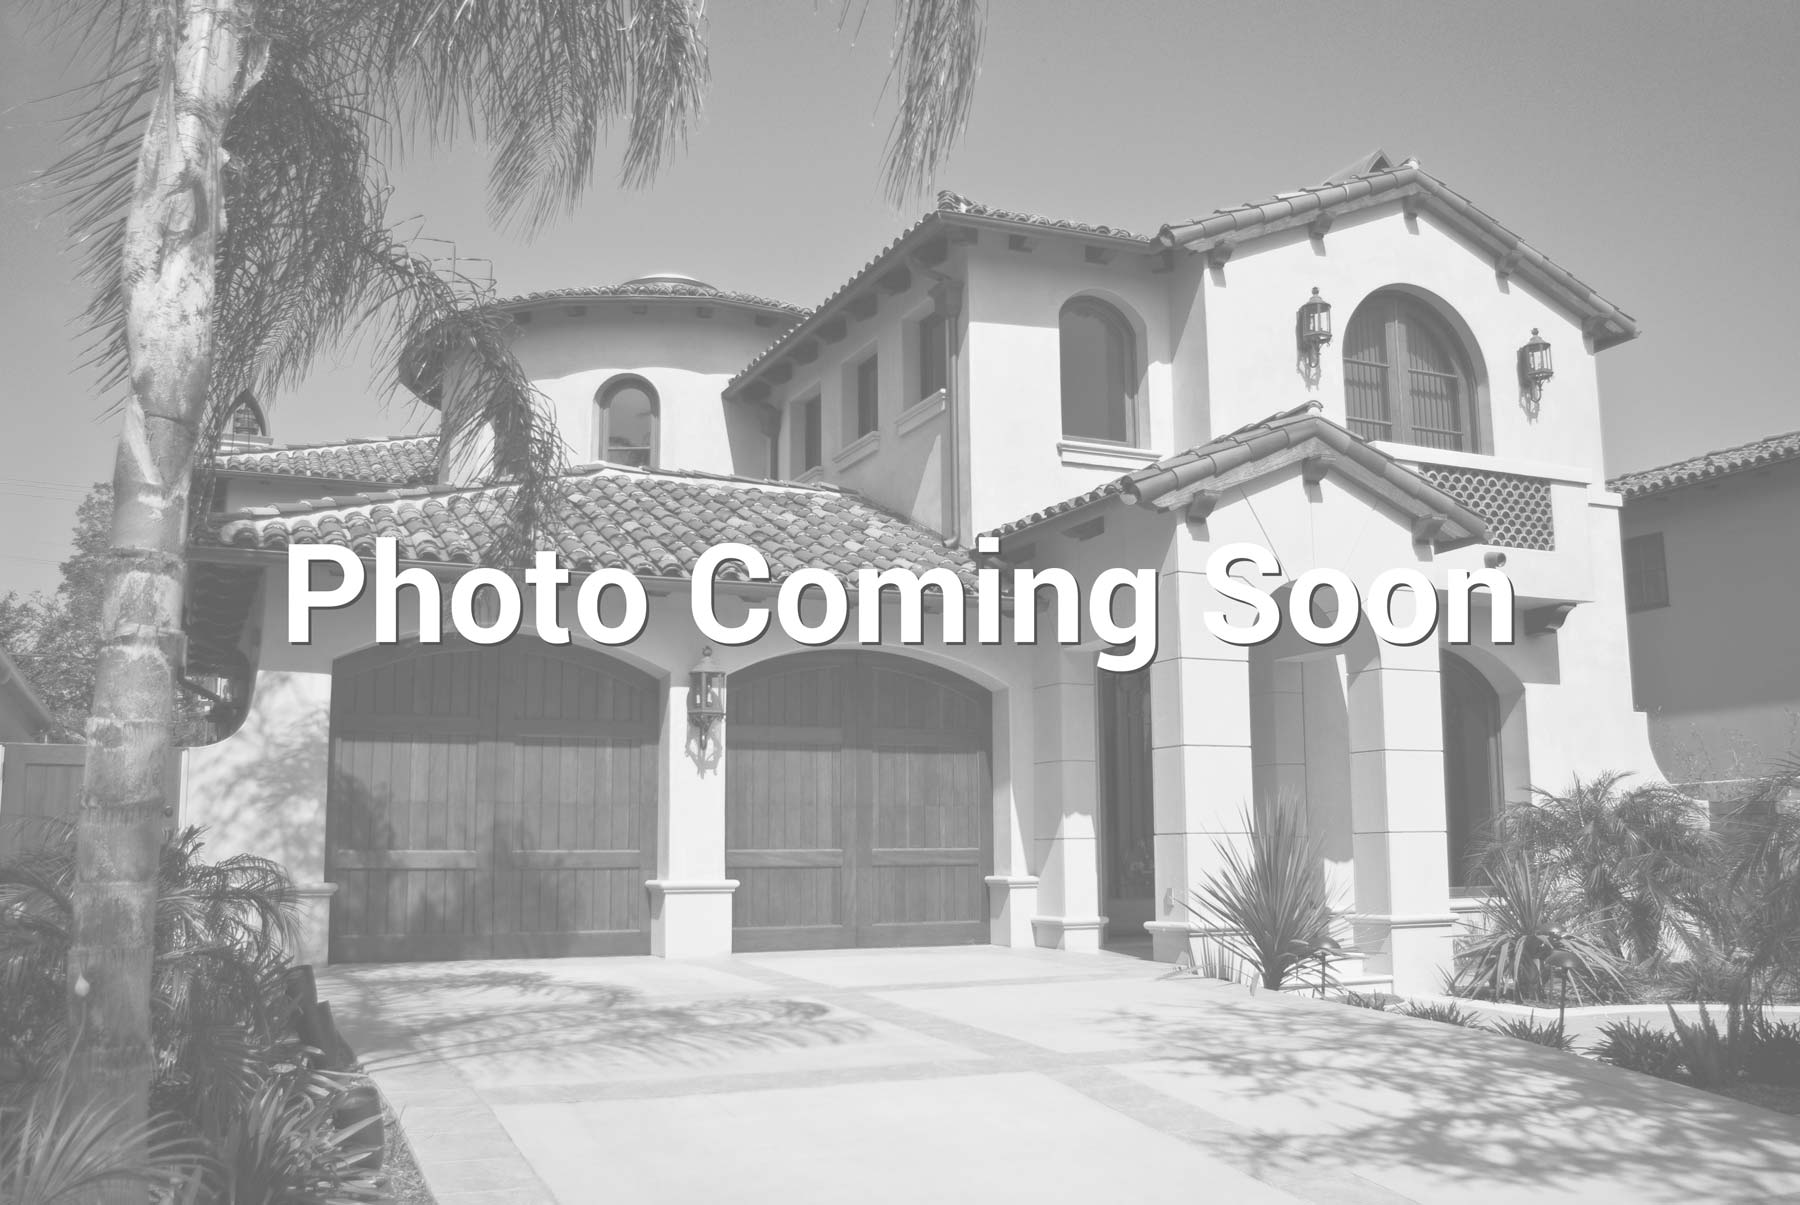 $748,080 - 4Br/2Ba -  for Sale in River Trail (rivt), Orange